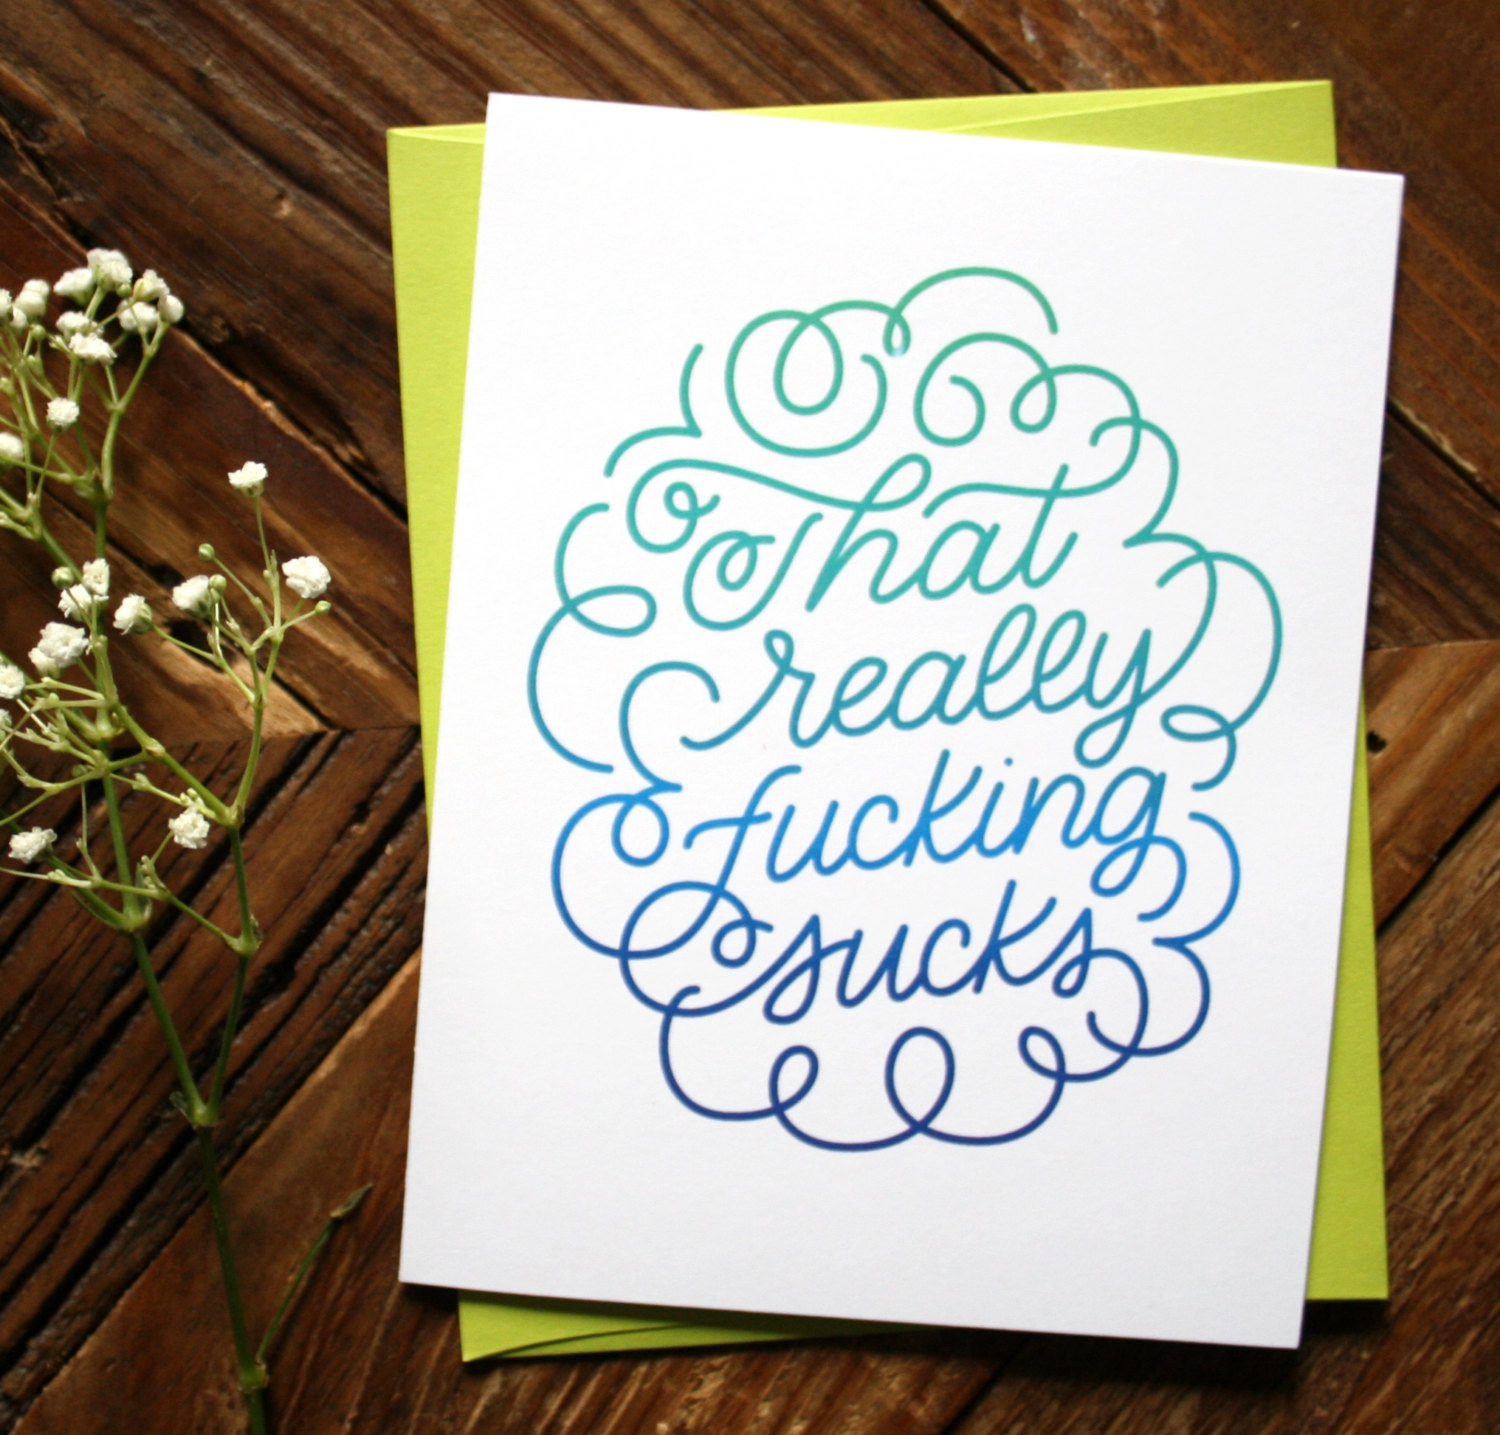 That really sucks sympathy greeting card inkery road ilfullxfull1107211437os3o kristyandbryce Images